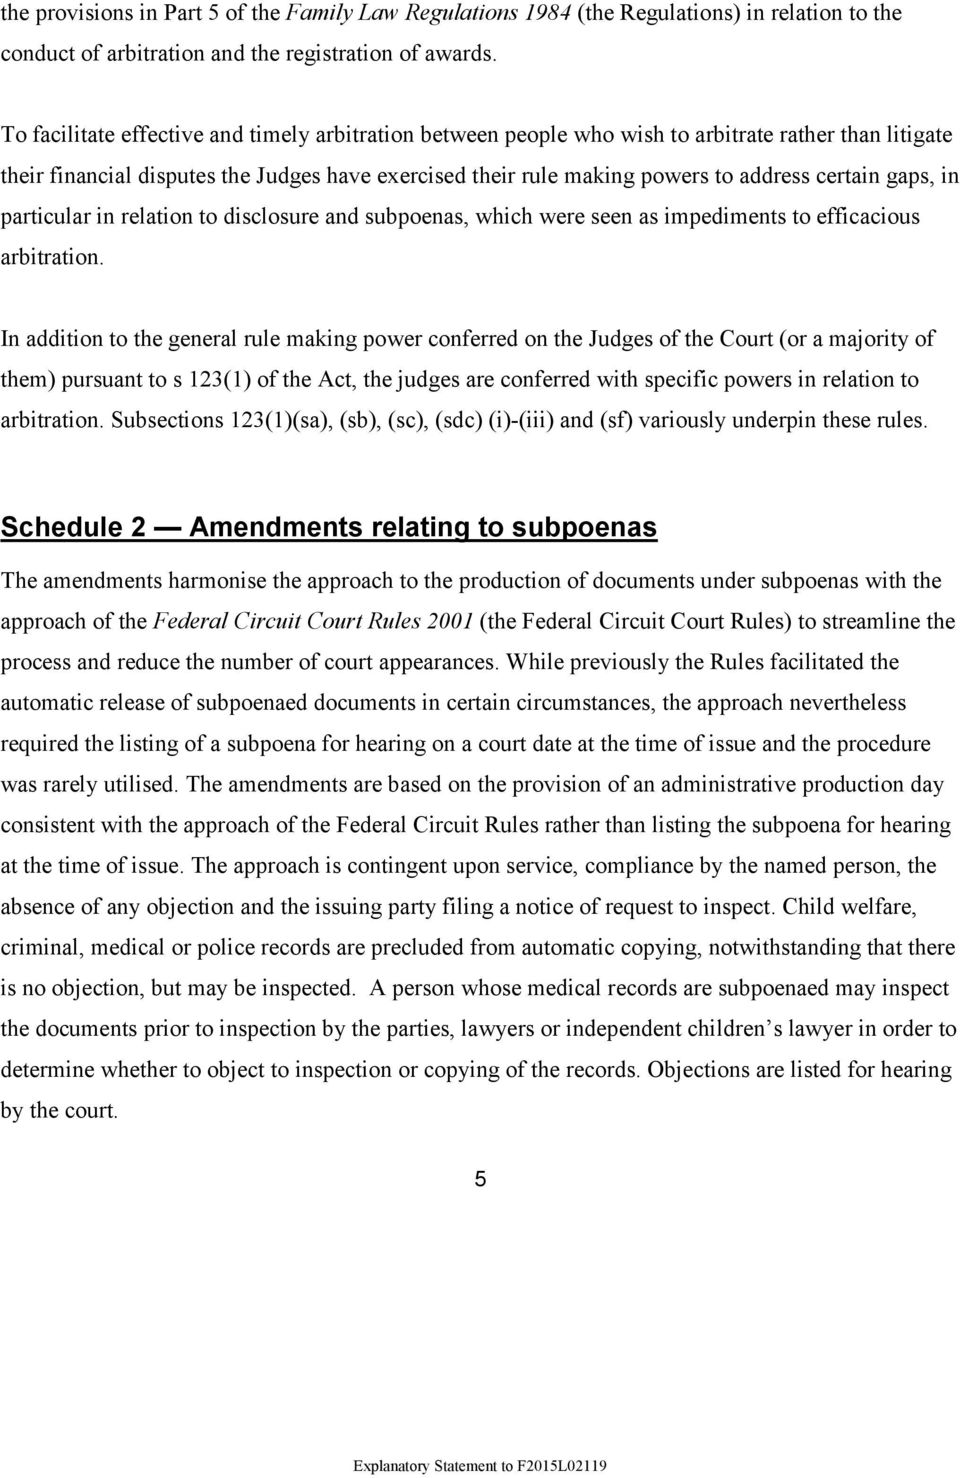 gaps, in particular in relation to disclosure and subpoenas, which were seen as impediments to efficacious arbitration.